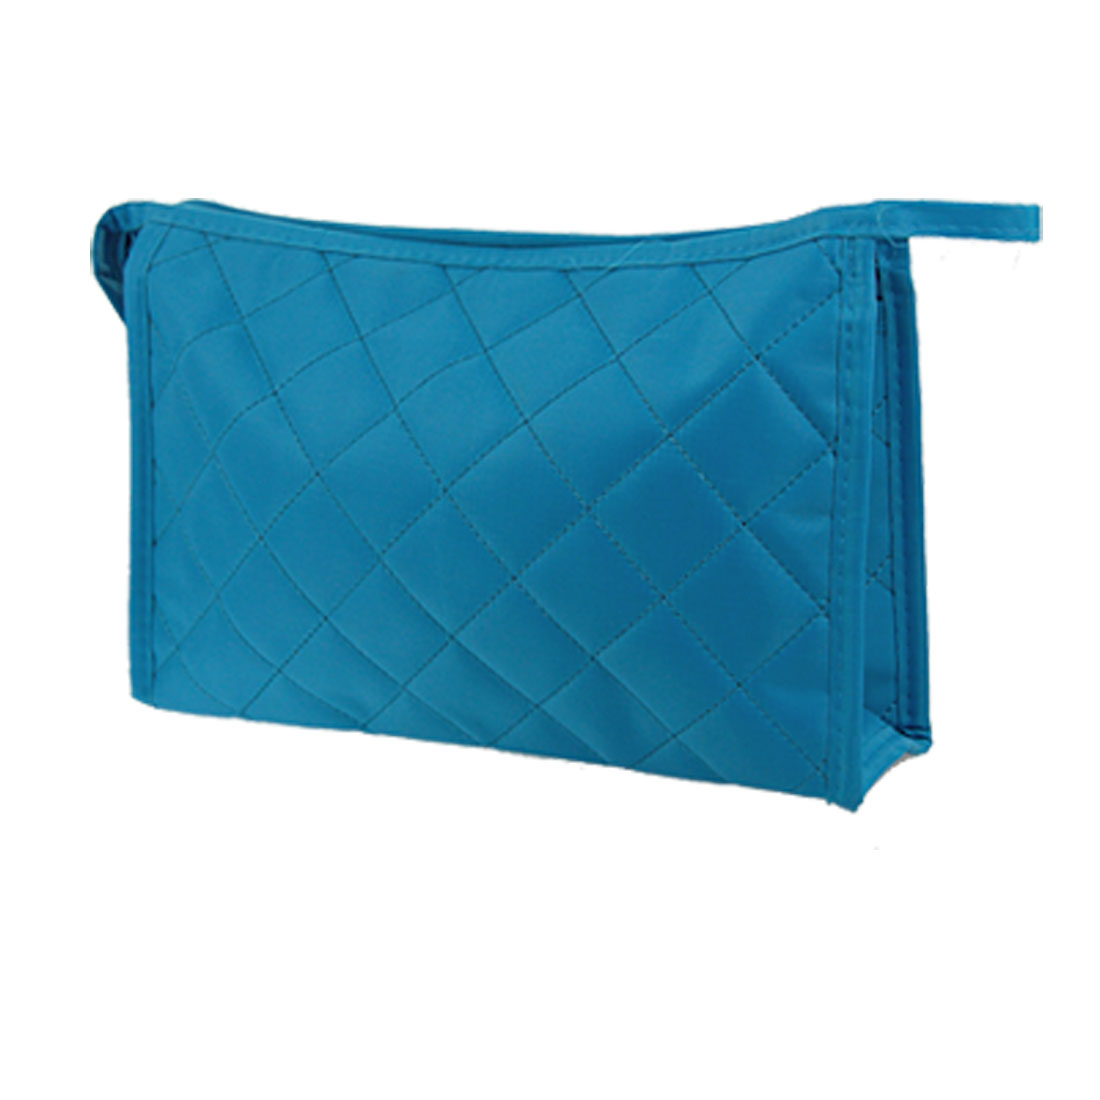 Cosmetic Rectangle Zipper Case Large Makeup Pouch Bag Blue for Woman